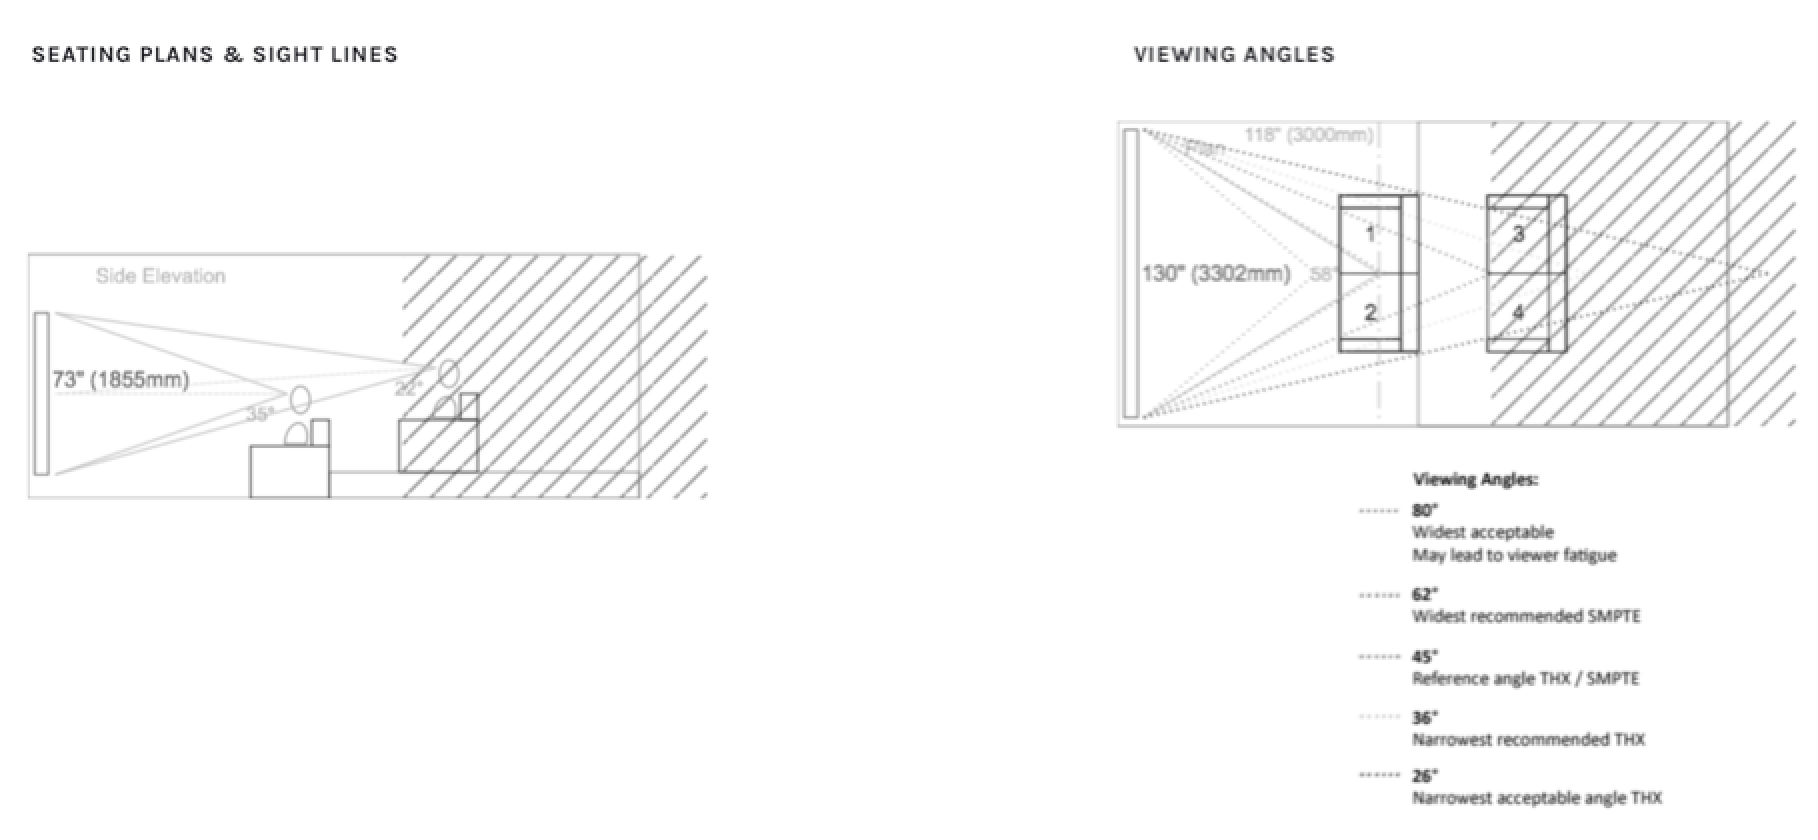 Home cinema seating layouts and sight lines recommendations